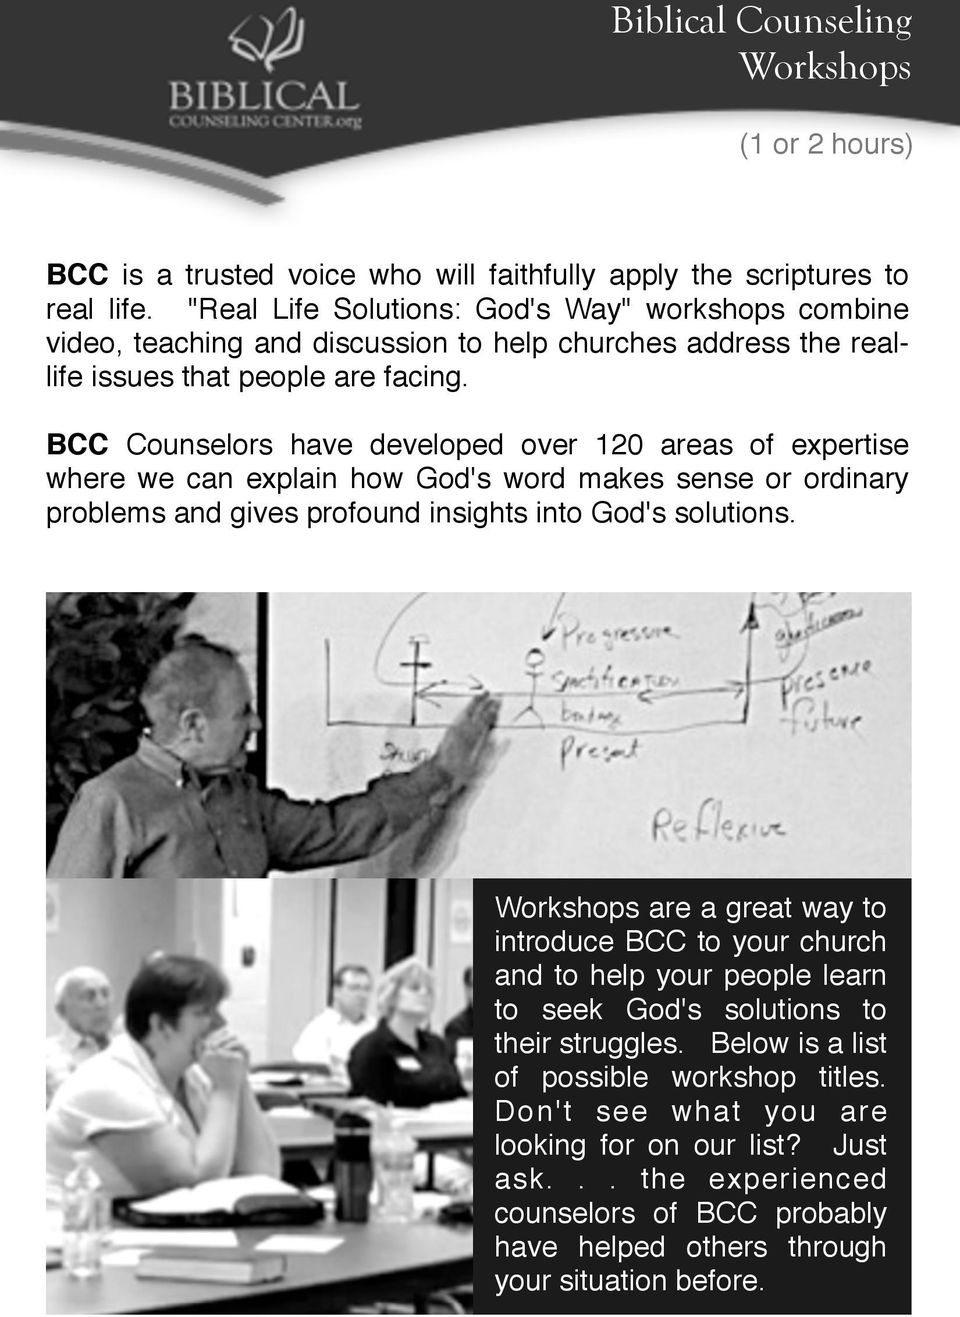 BCC Counselors have developed over 120 areas of expertise where we can explain how God's word makes sense or ordinary problems and gives profound insights into God's solutions.